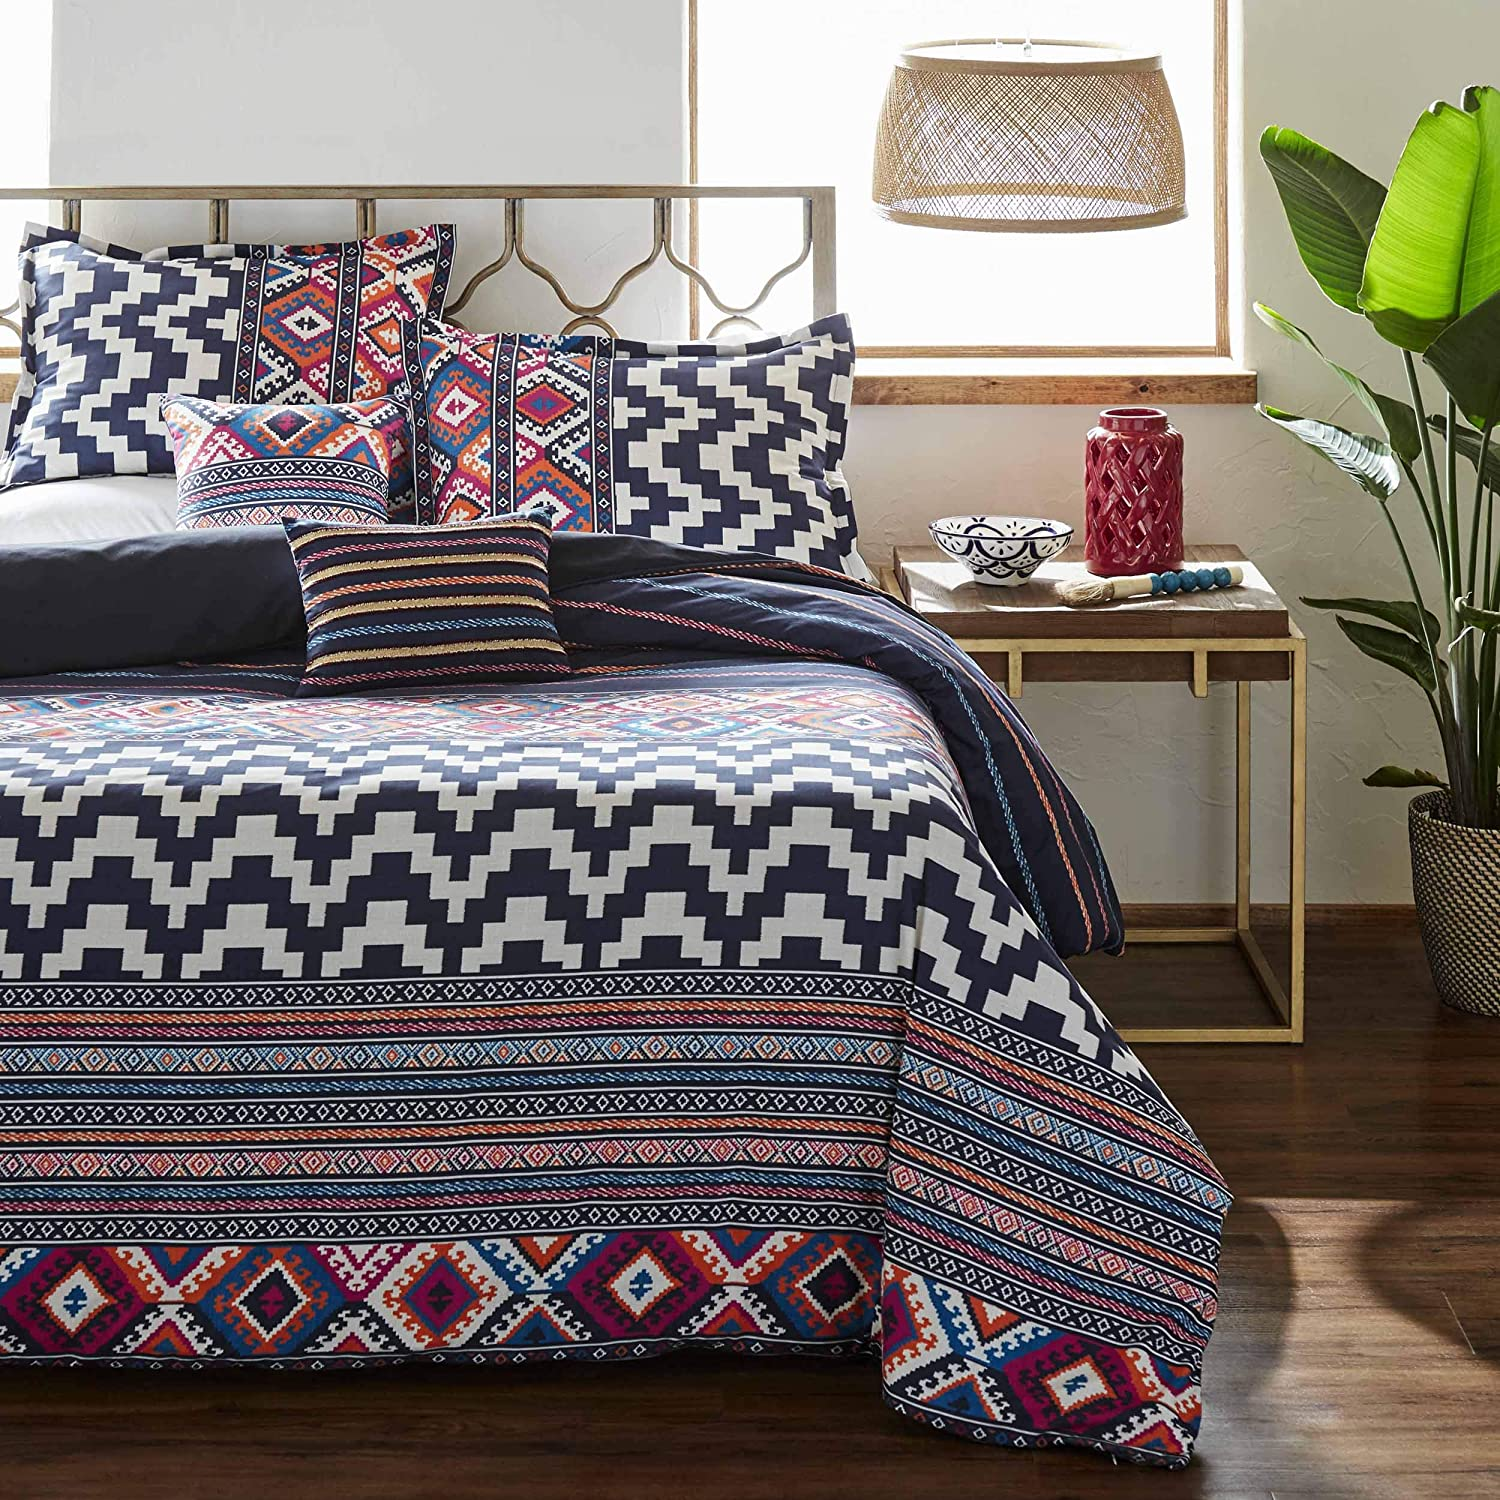 Azalea Skye Kilim Stripe Comforter Set, King, Navy